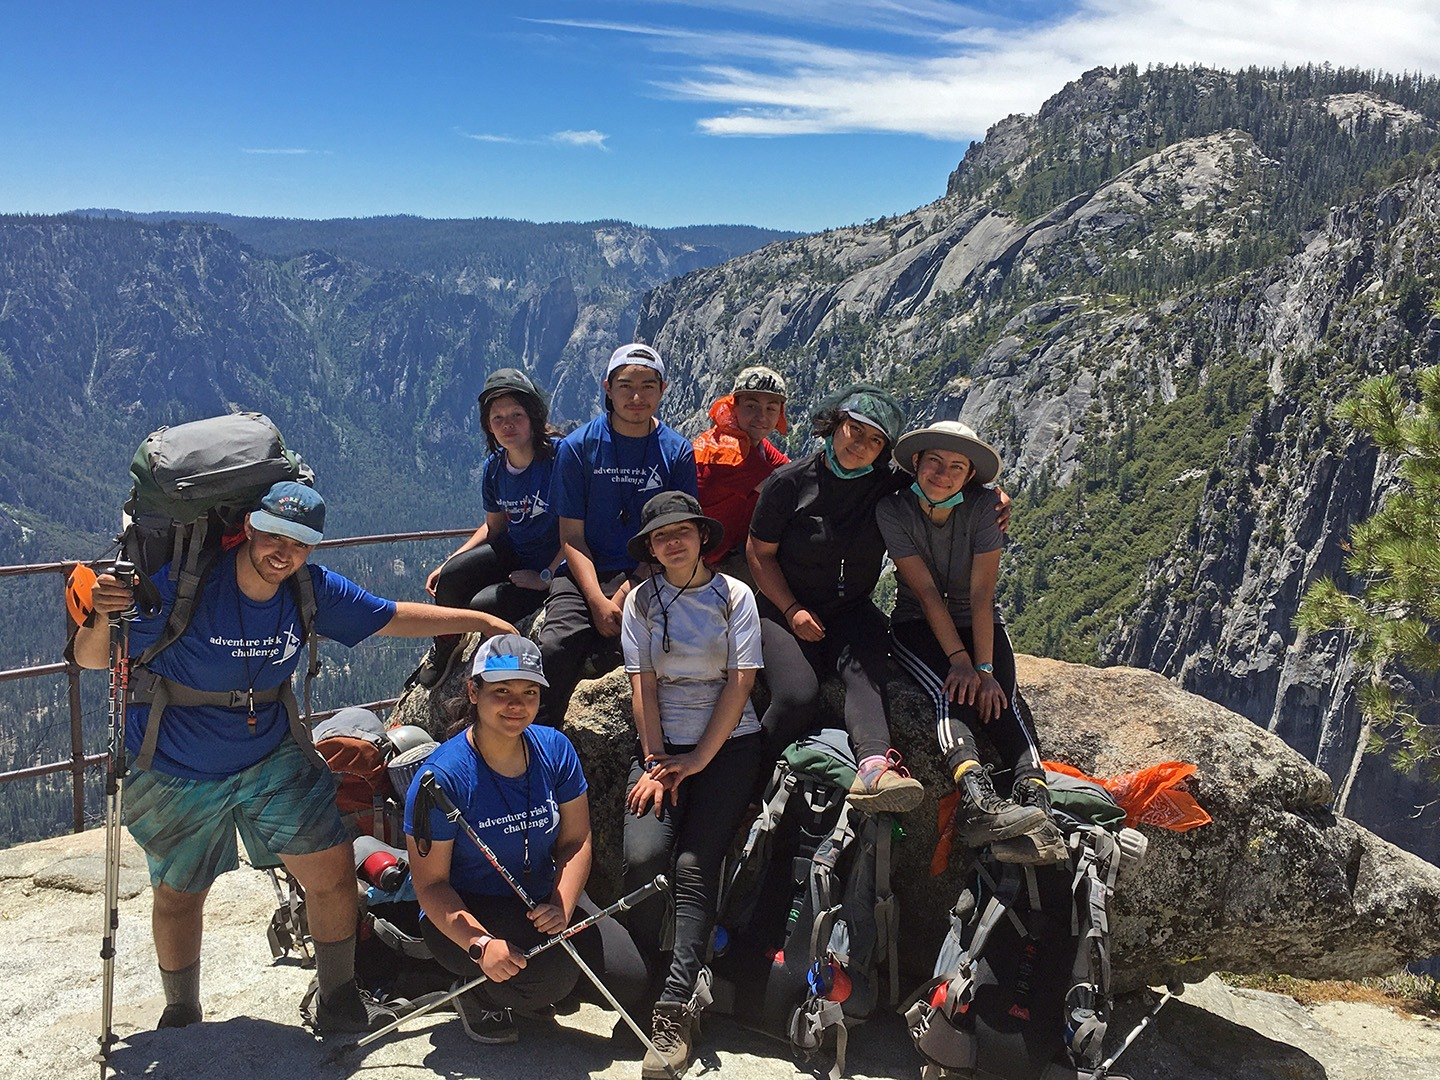 The eight high school students participating in the 2020 Adventure Risk Challenge summer course pose for a group photo at the overlook above Yosemite Falls, with Yosemite Valley stretching out in the background.